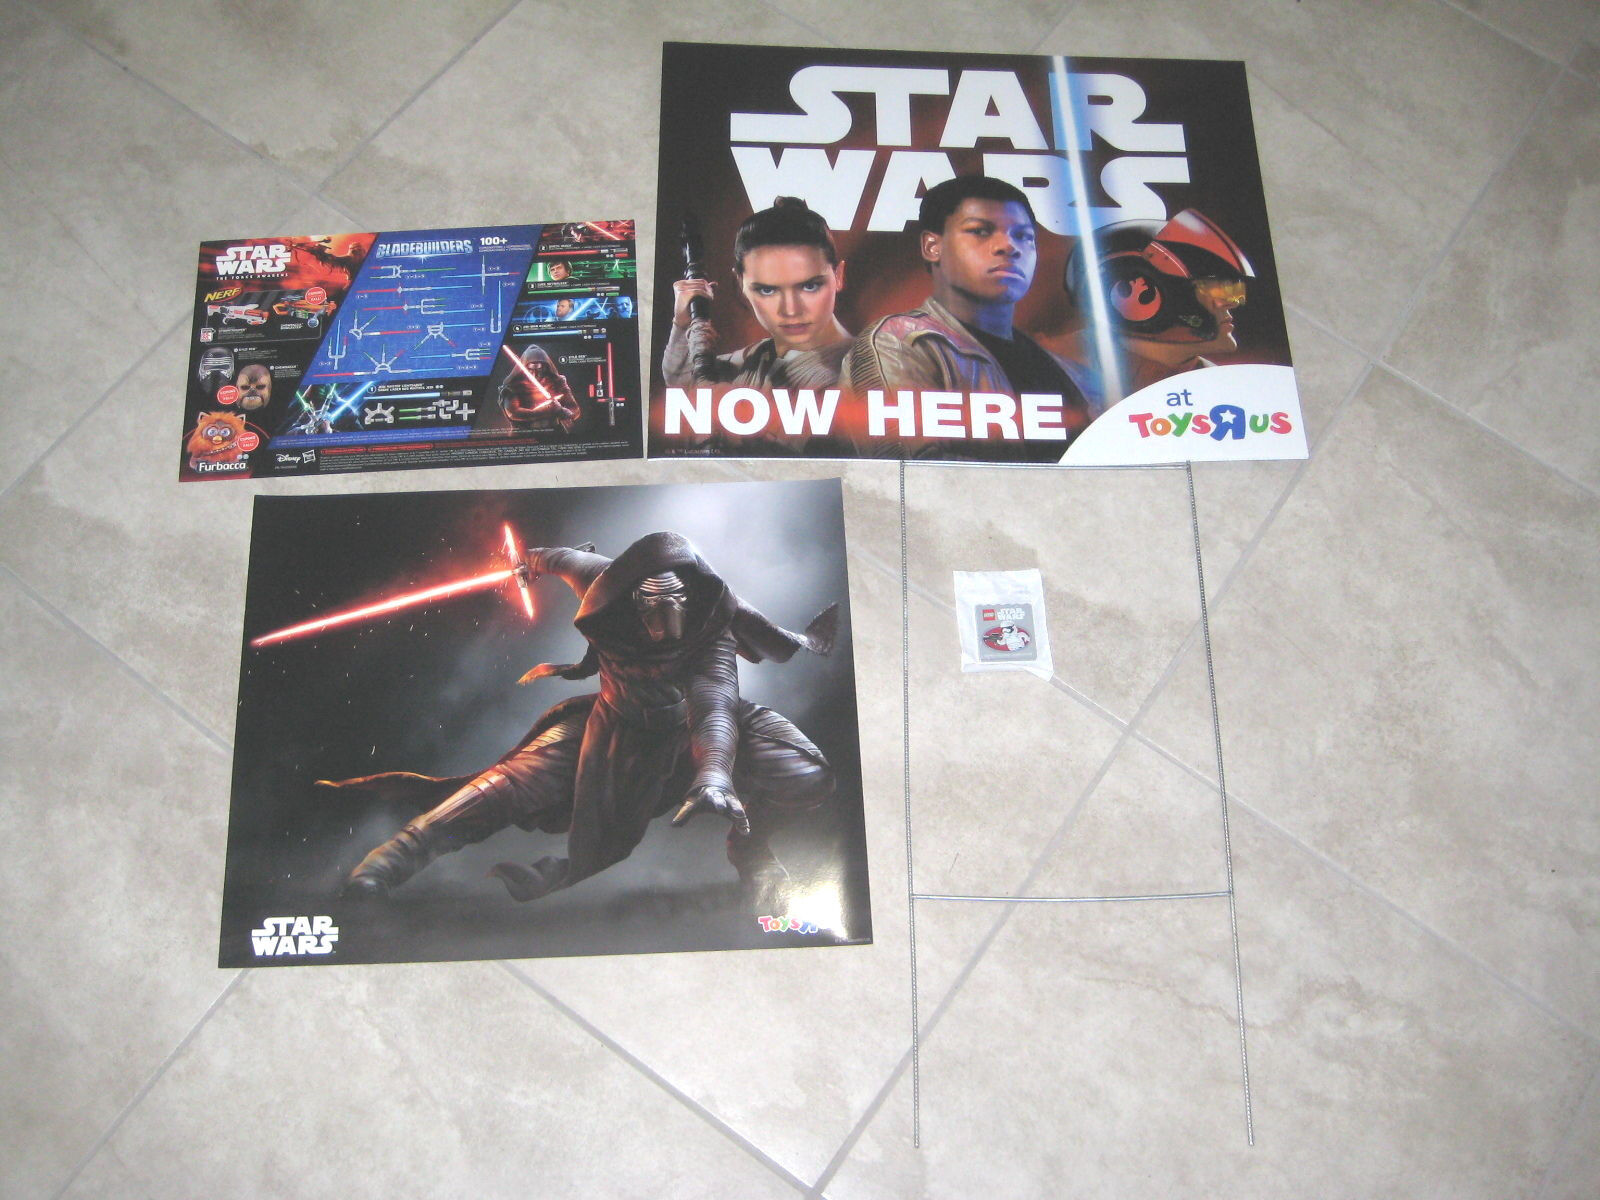 Star Wars The Force Awakens ToysRUs FORCE FRIDAY Store Poster Lego SIGN LOT of 4